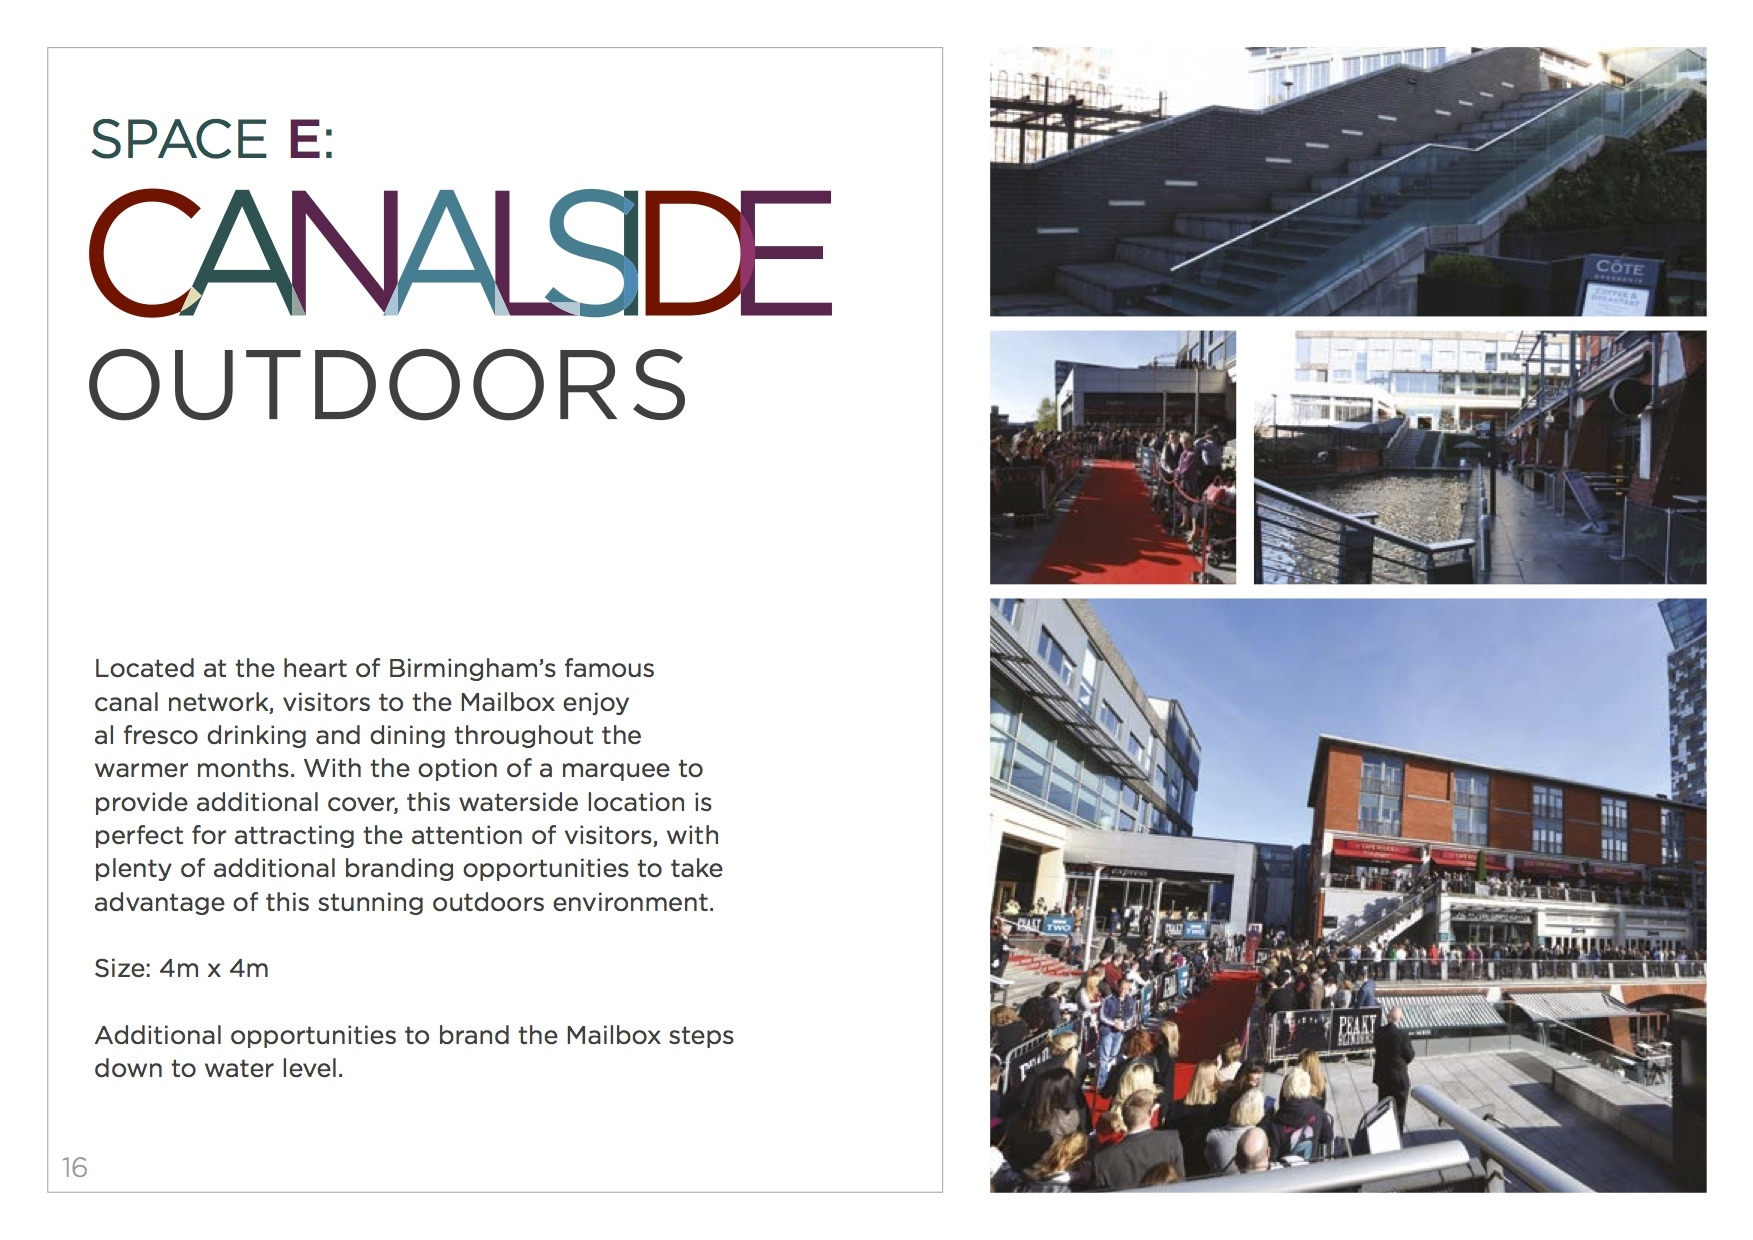 Space E Canalside Outdoors.jpg